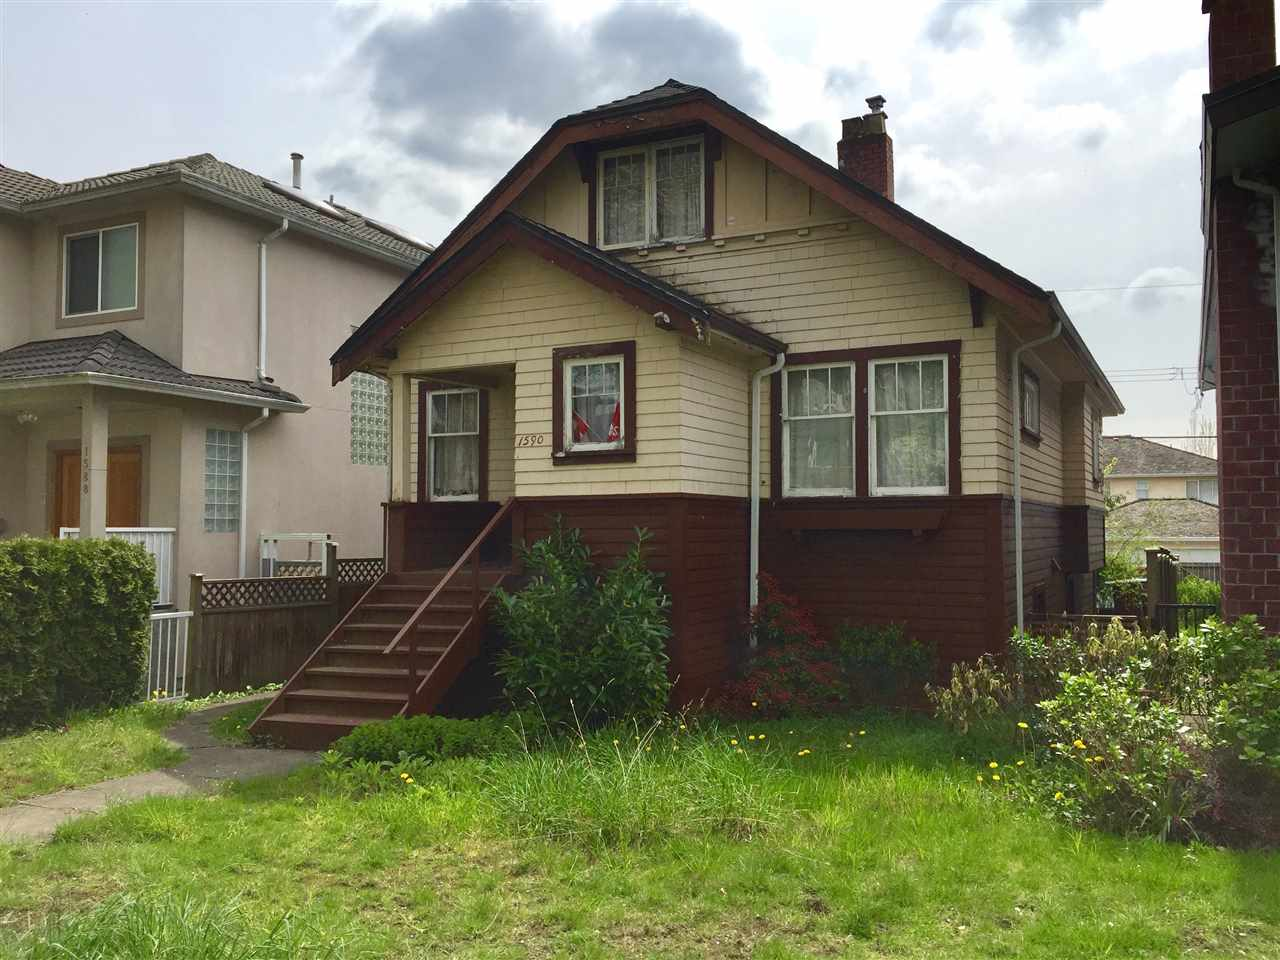 Main Photo: 1590 W 65TH Avenue in Vancouver: S.W. Marine House for sale (Vancouver West)  : MLS® # R2166794